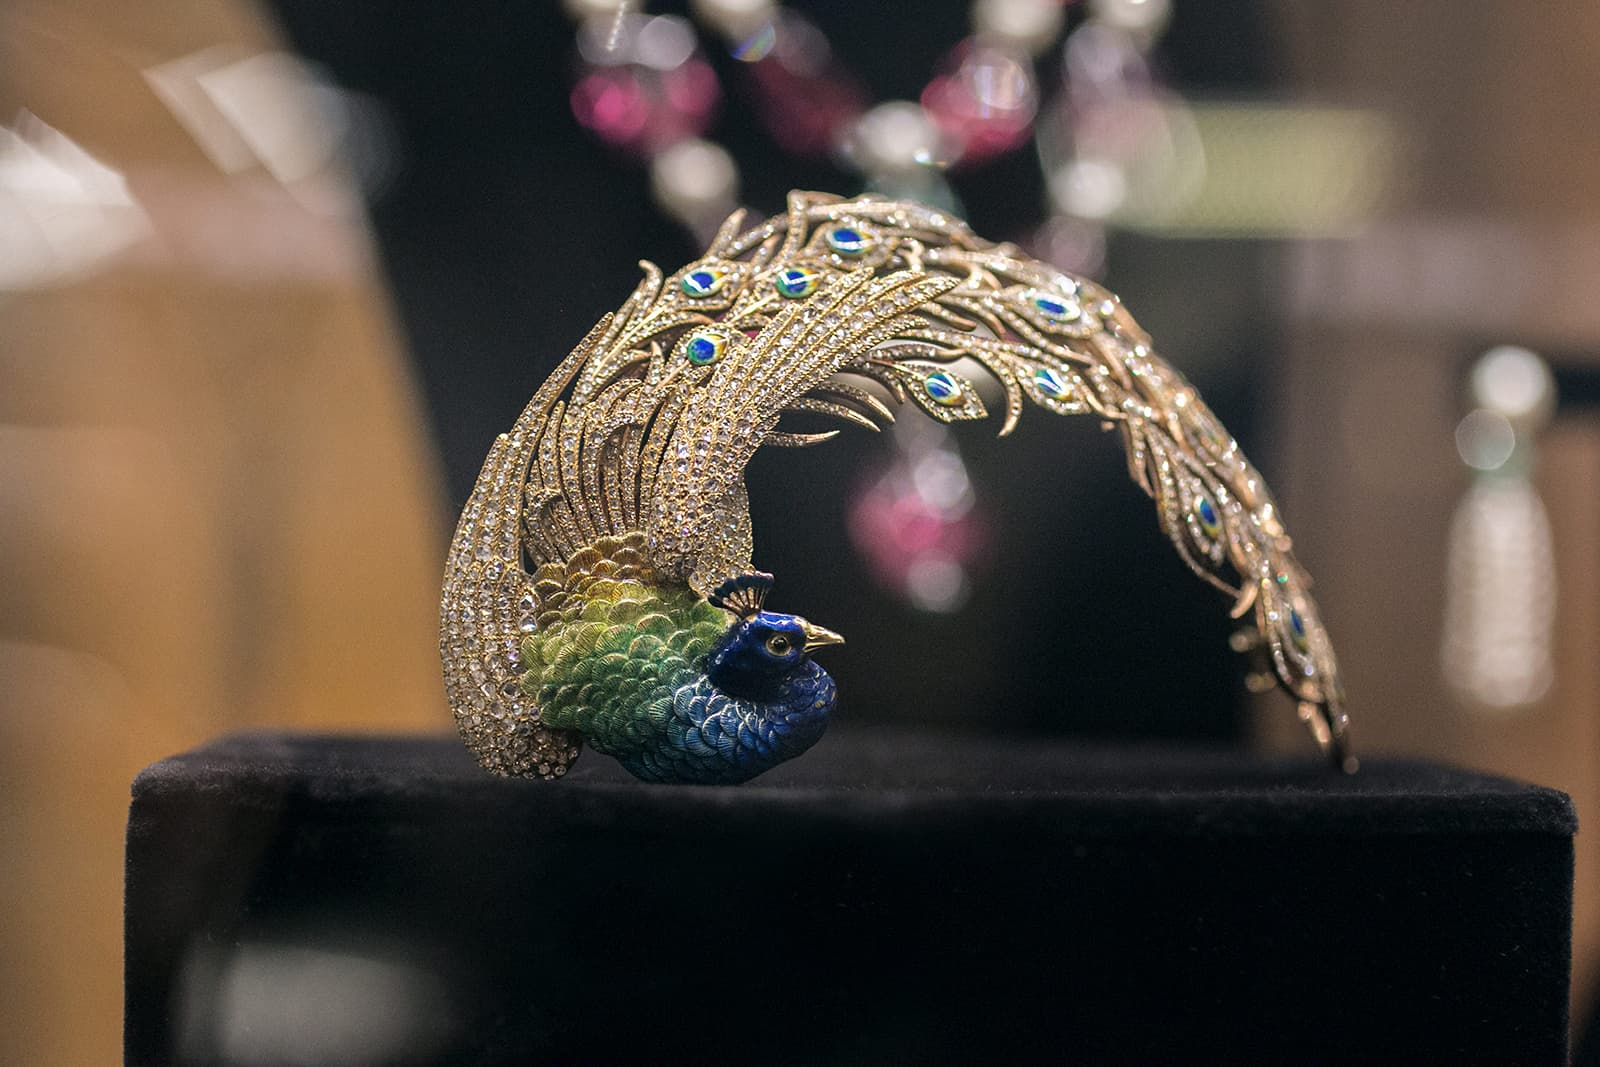 Christie's 'Maharajas & Mughal Magnificence' Mellerio dits Meller peacock aigrette with diamonds in enamel and gold, commissioned by the Maharaja of Kapurthala in 1905